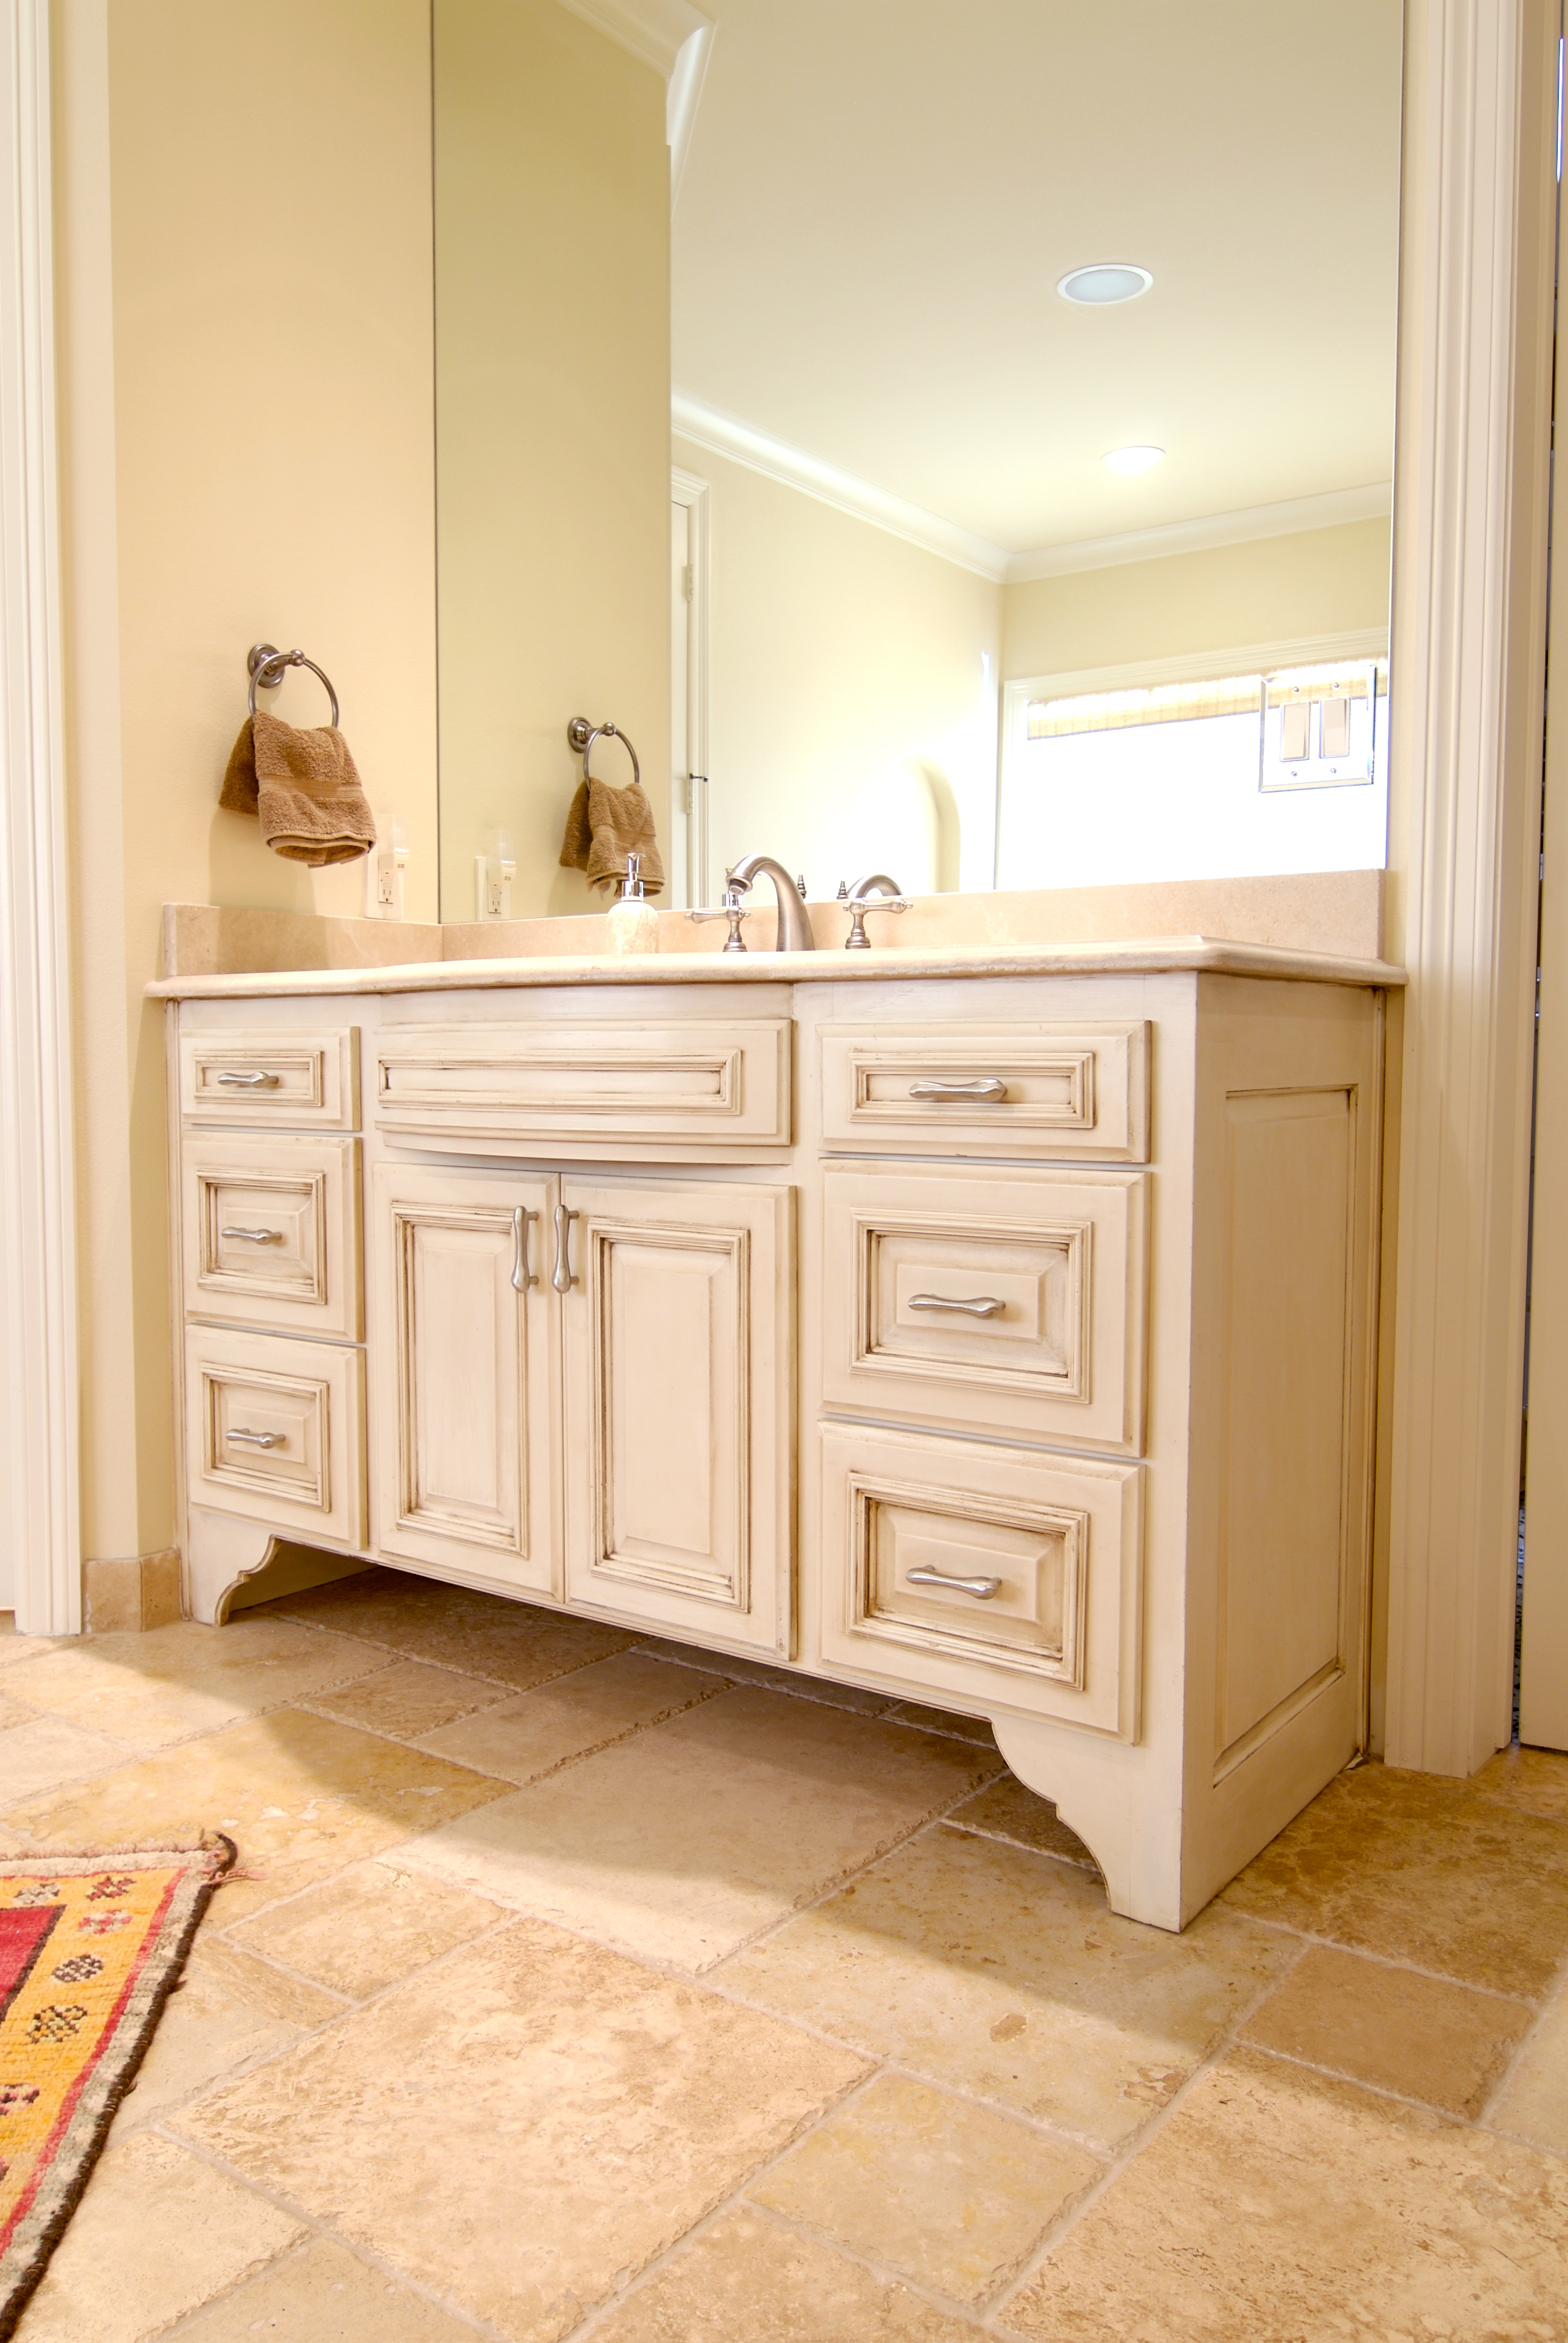 Bathroom Cabinets And Counters